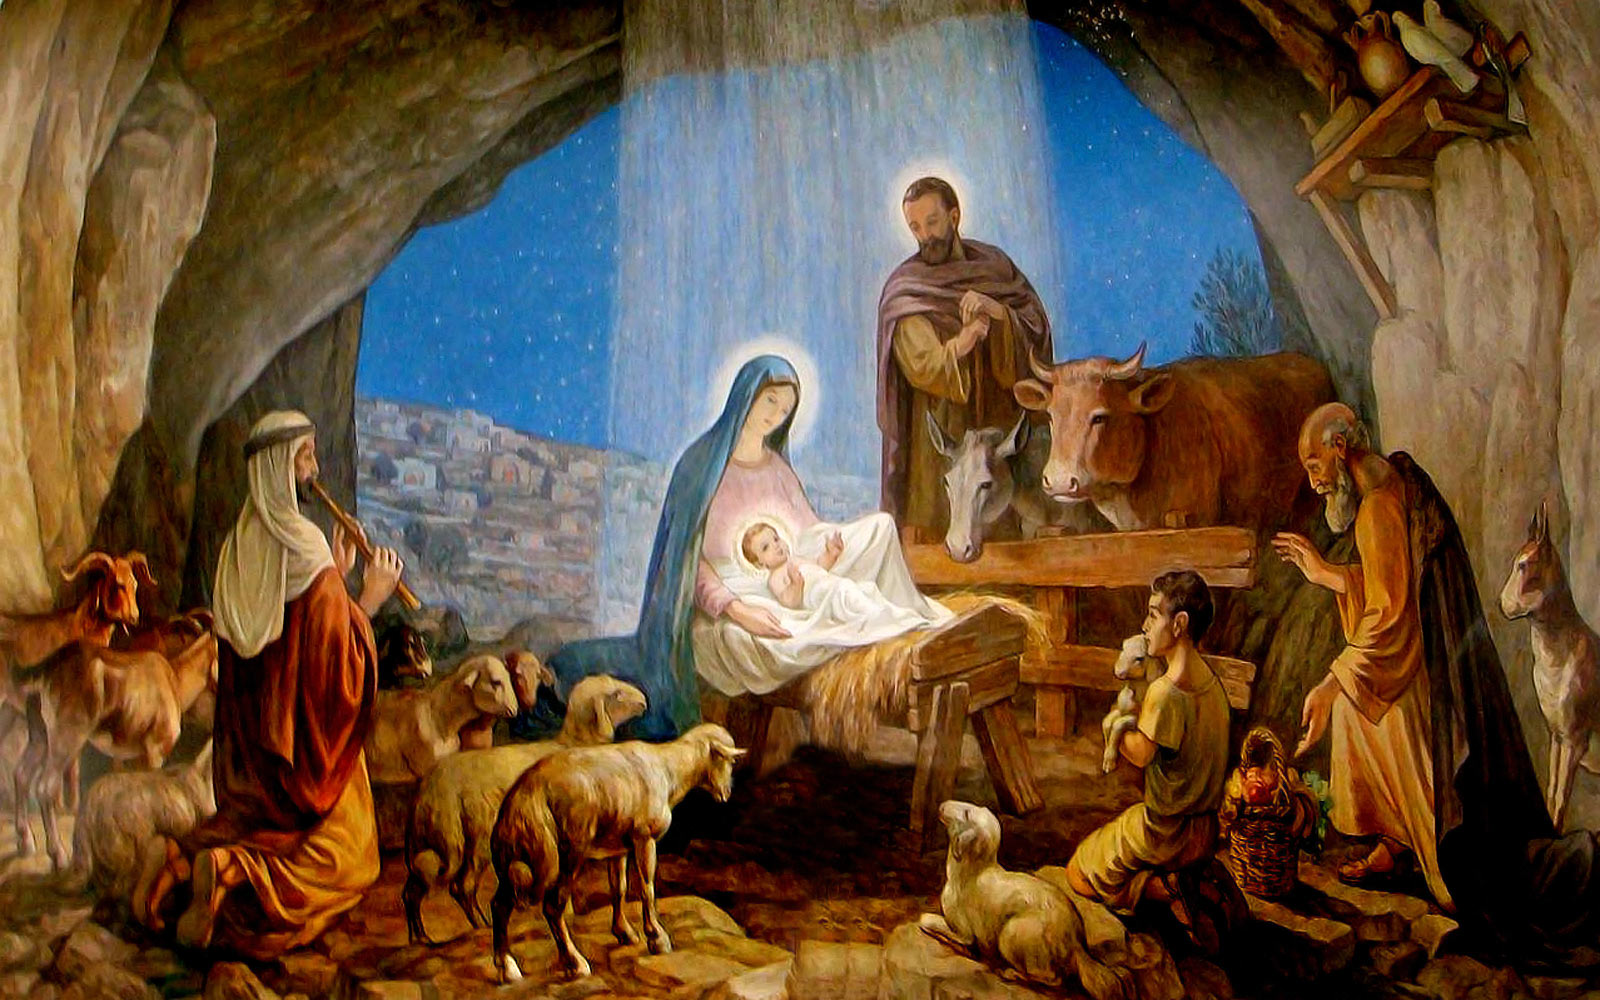 nativity scene jesus birth